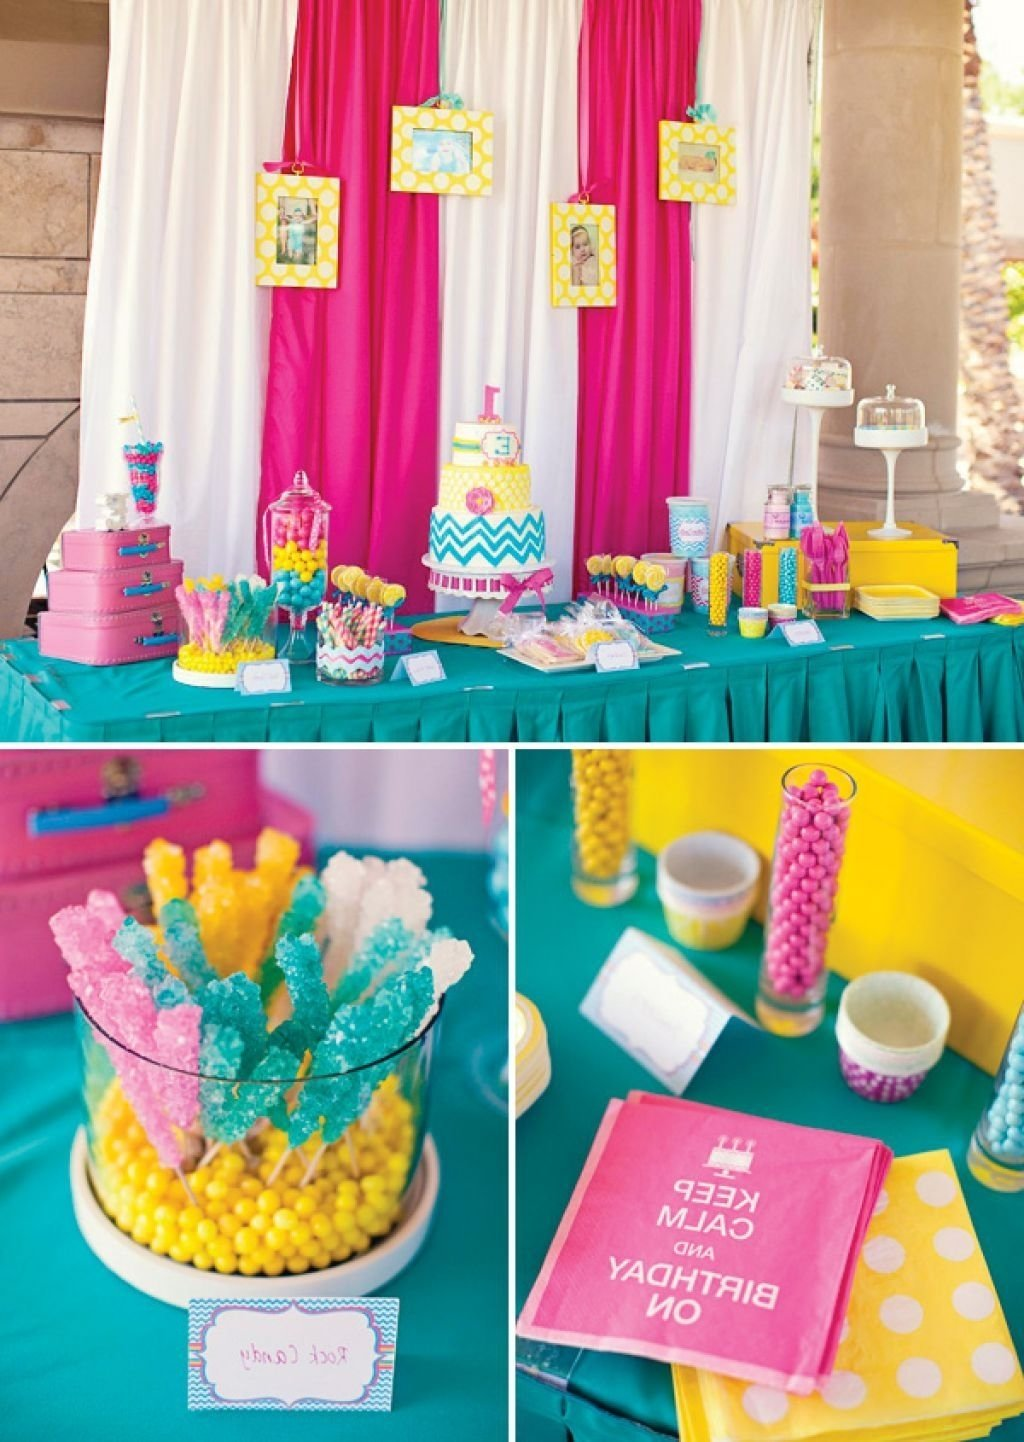 10 Fabulous 6 Year Old Birthday Ideas outdoor party decorations google search madeline pinterest 18